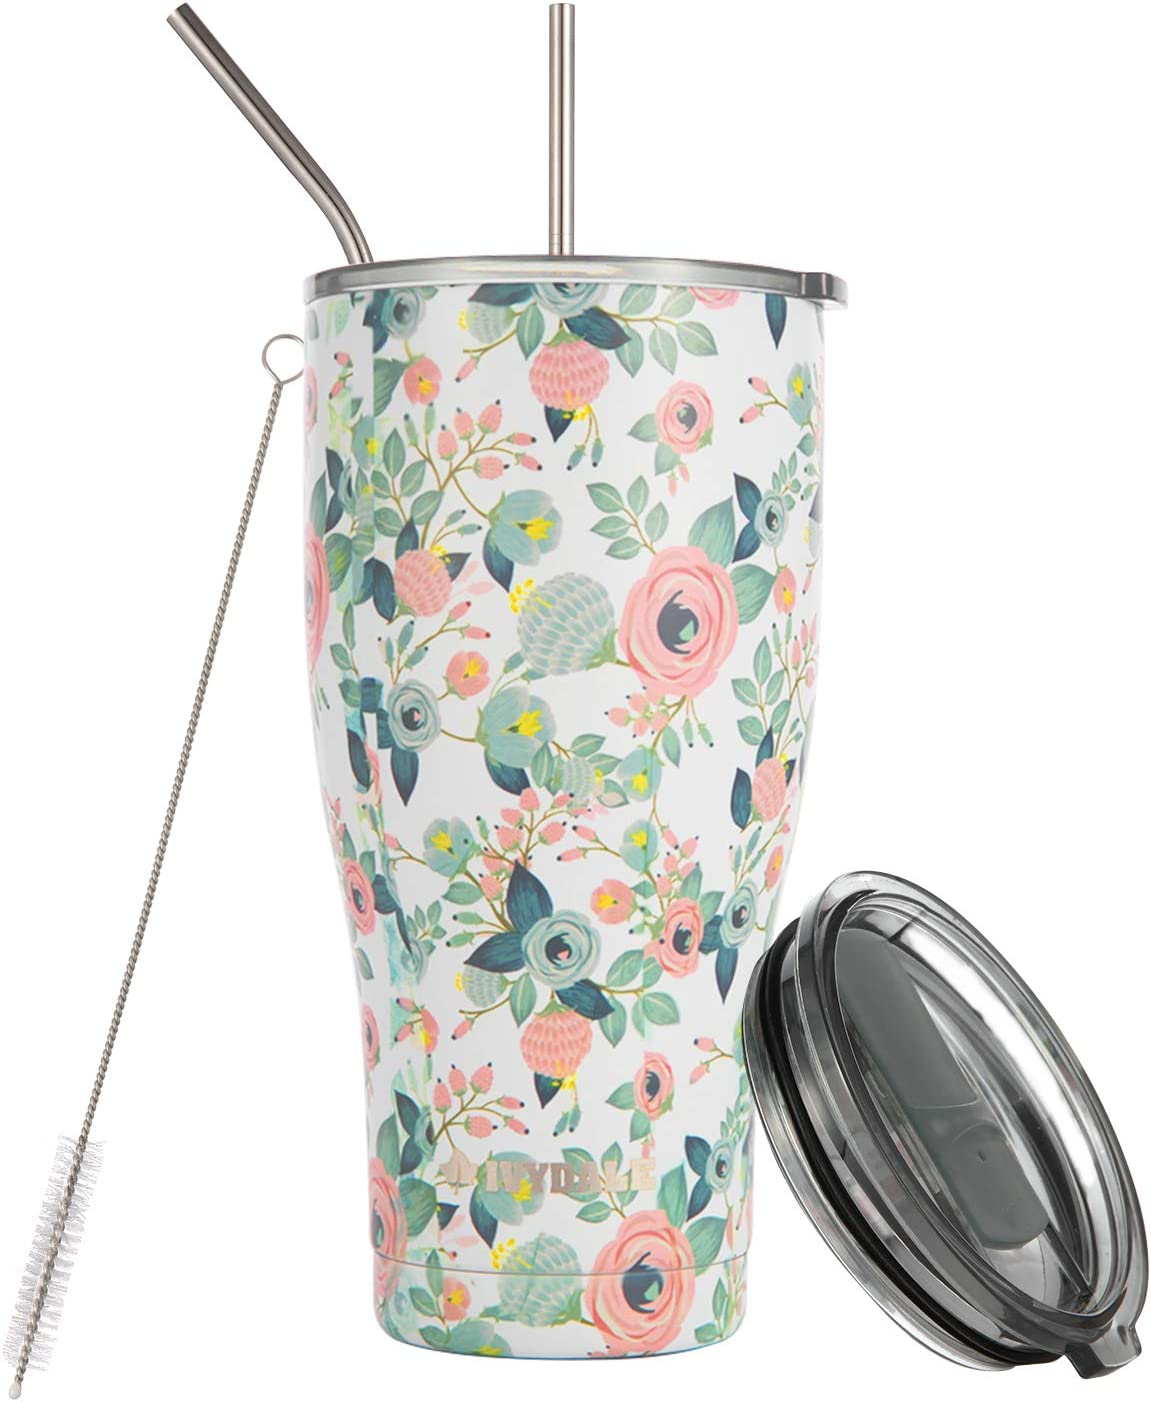 Ivydale Insulated Stainless Steel Tumbler - Double Wall Vacuum Insulated Tumbler for Hot and Cold Beverage - Vacuum Travel Mug - 30oz Tumbler - Floral Tumbler with Straw, Cleaning Brush 21002